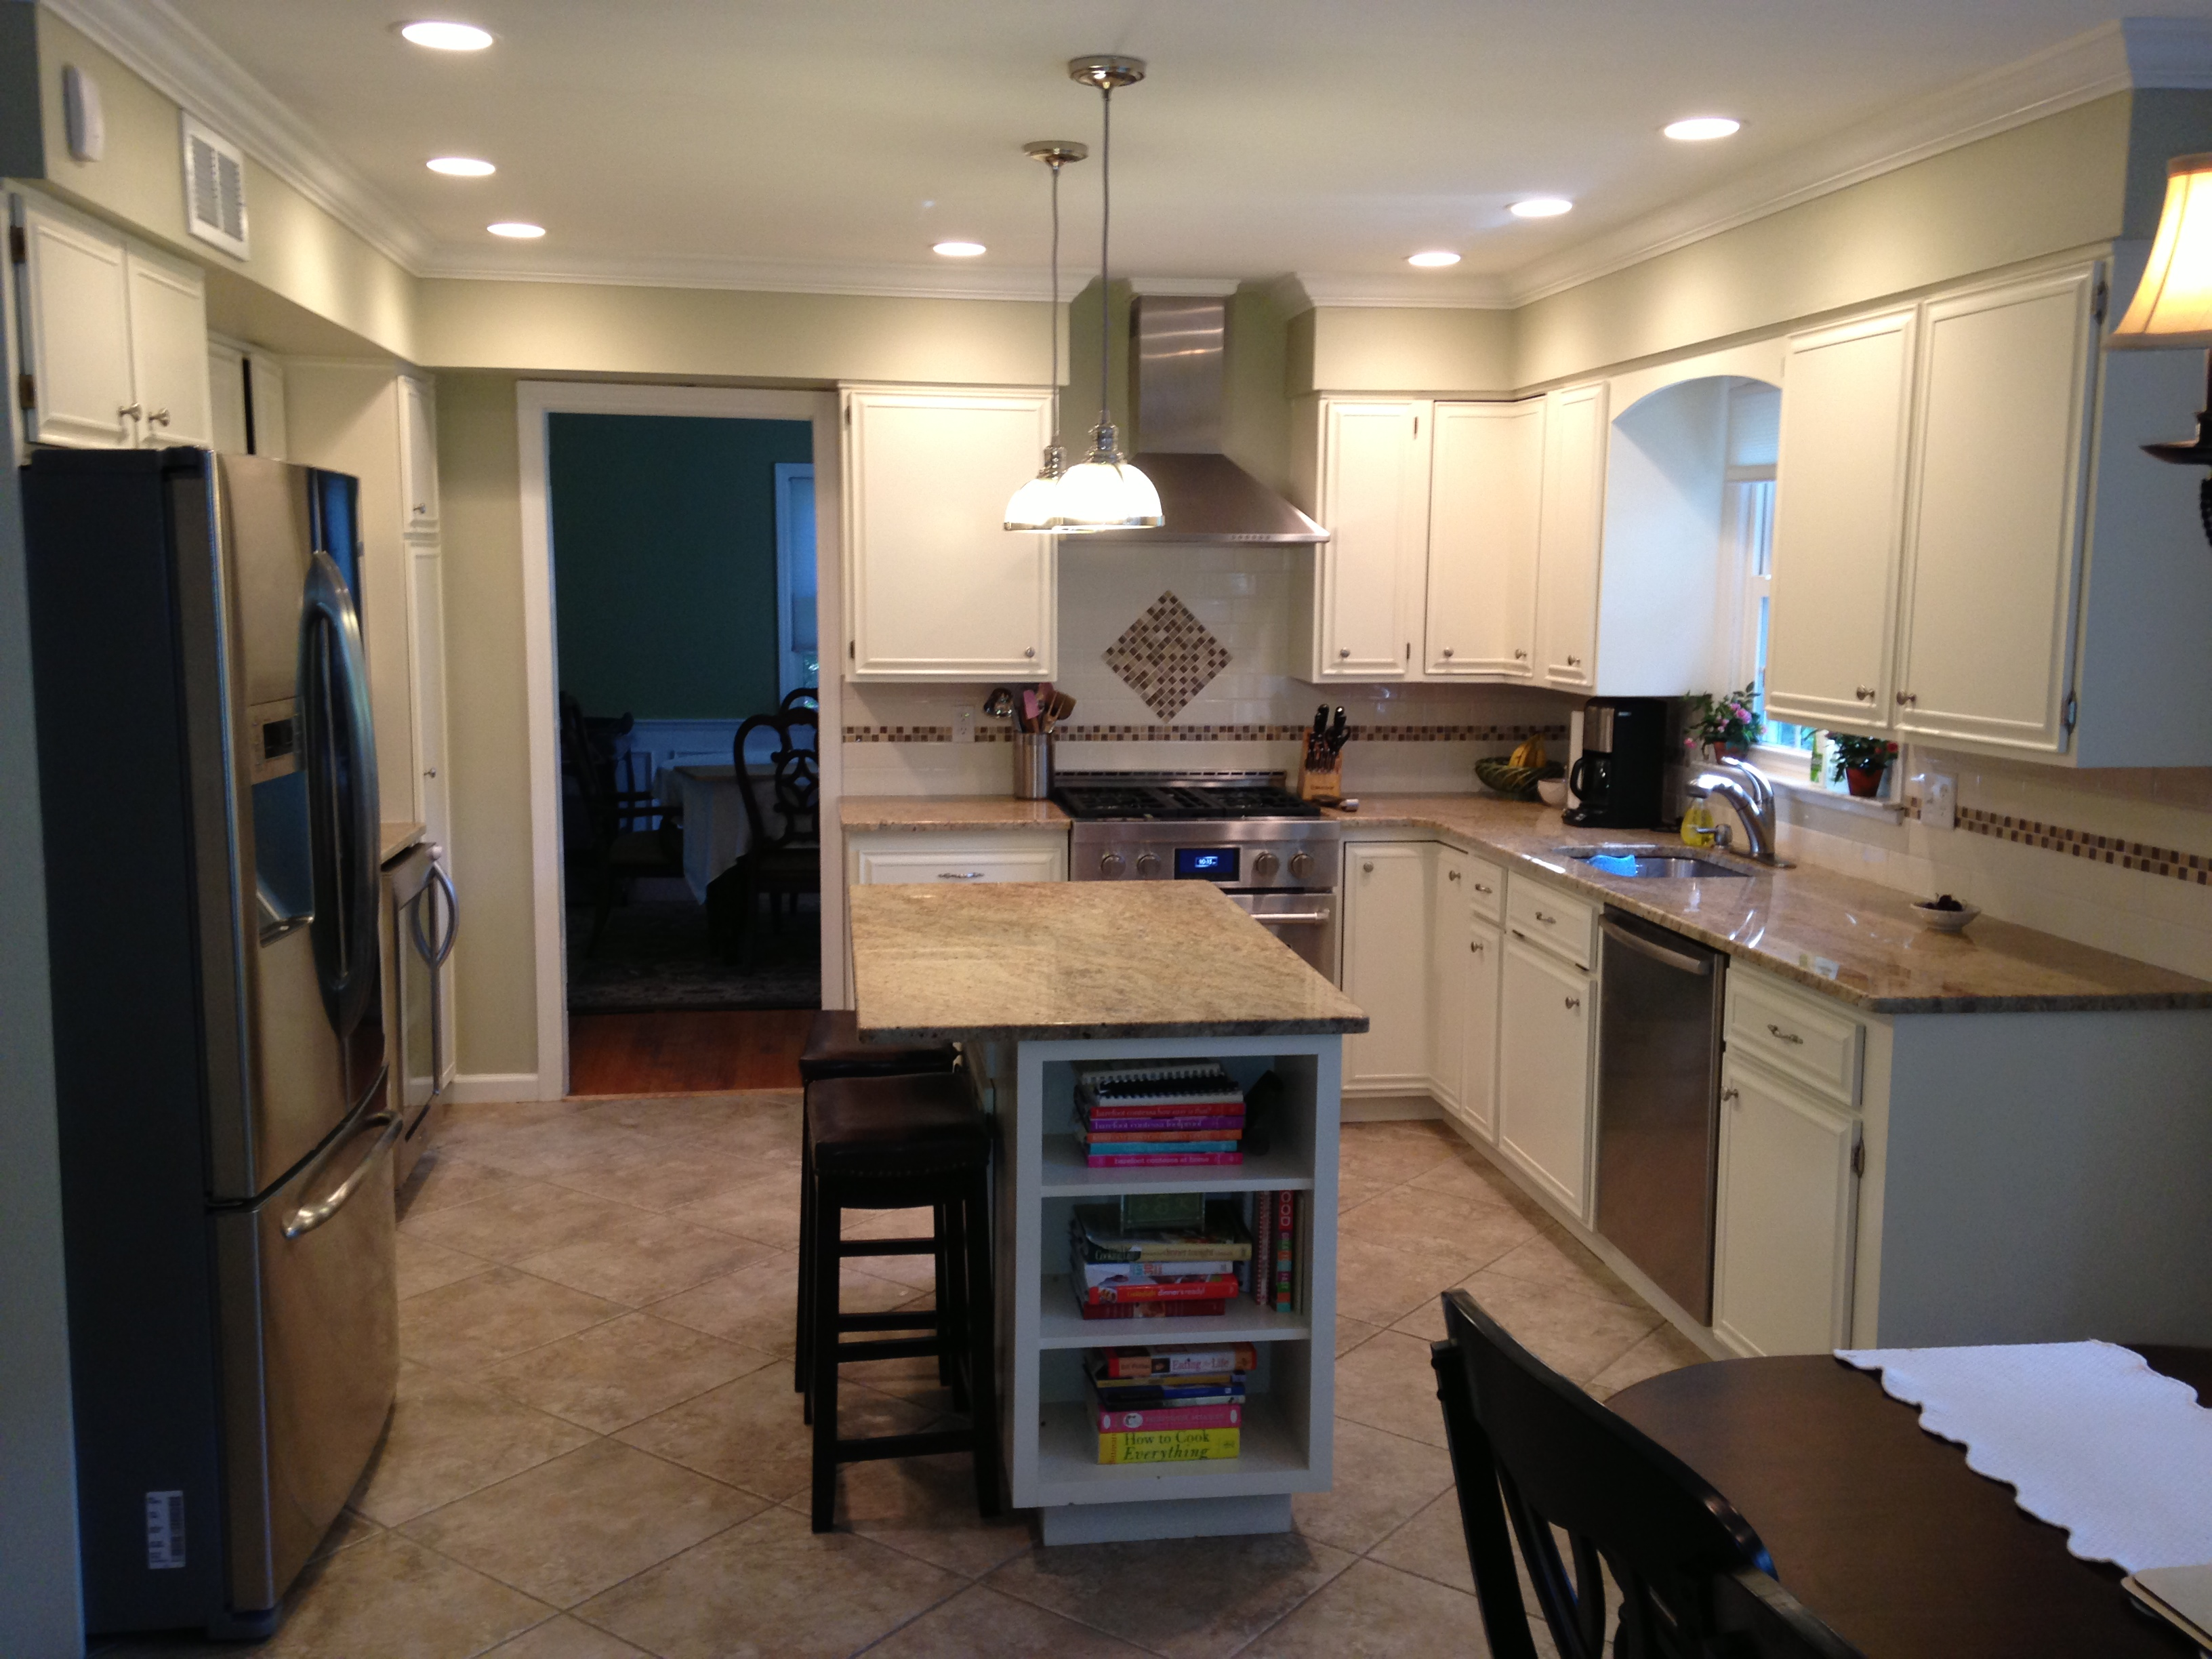 Kitchen Facelift Kitchen Facelift Morristown New Jersey Home Improvement